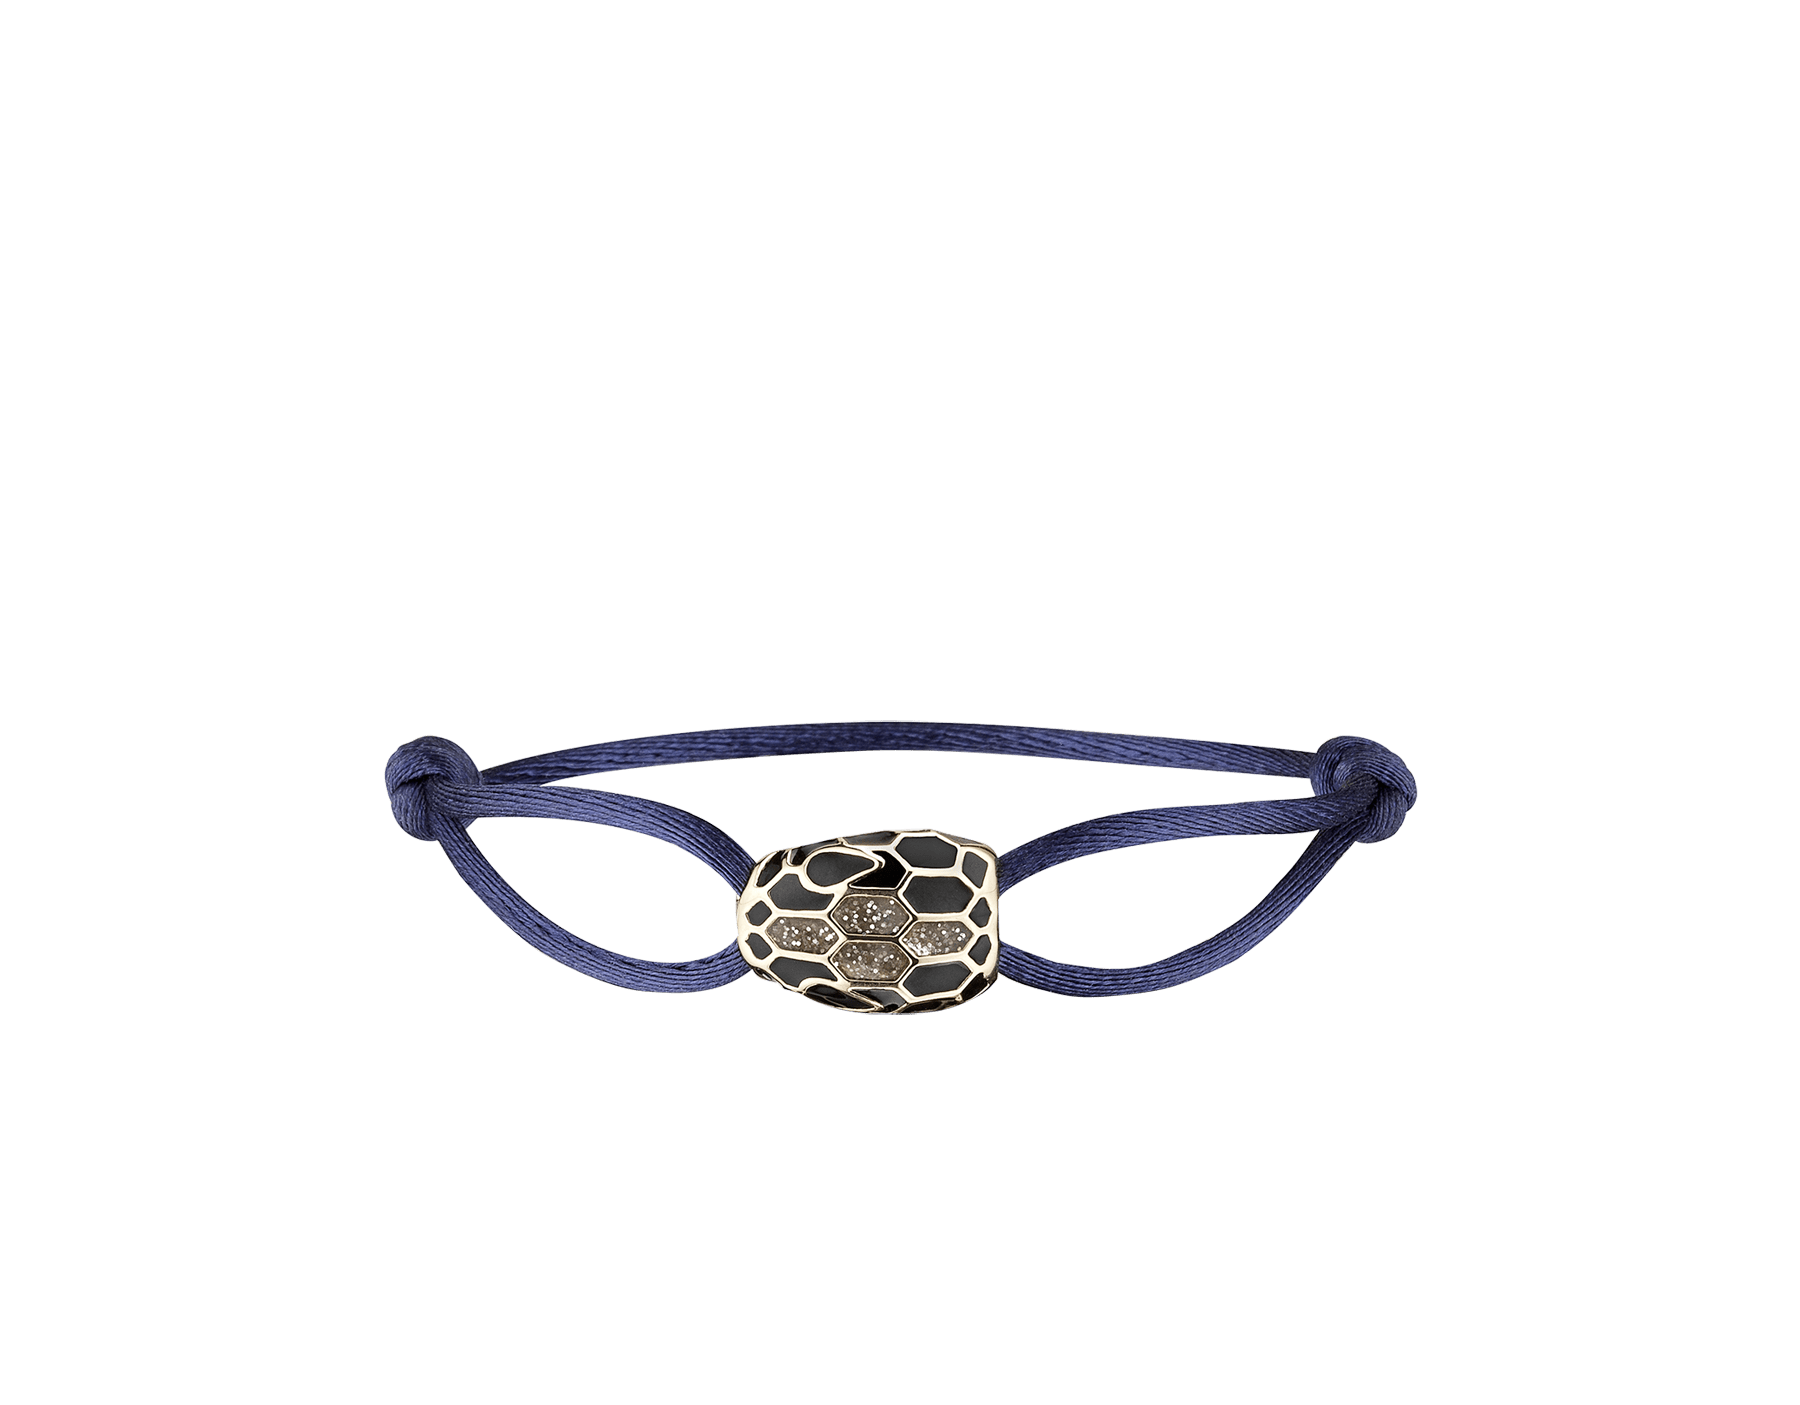 """""""Serpenti Forever"""" bracelet in Mimetic Jade green fabric with a dark ruthenium-plated brass tempting snakehead décor enamelled in black, with seductive black enamel eyes. SERP-STRINGb image 1"""